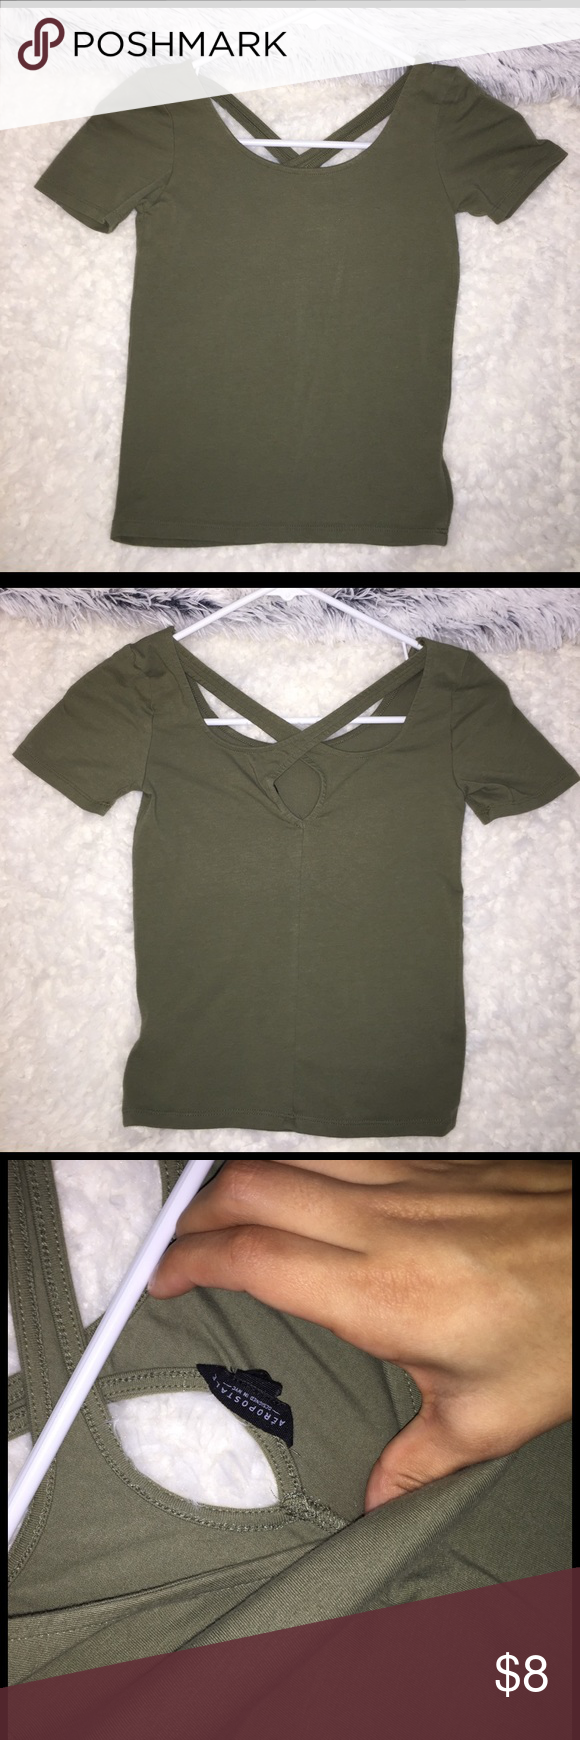 Olive green crop top only worn once! very flattering color, size small Aeropostale Tops Crop Tops